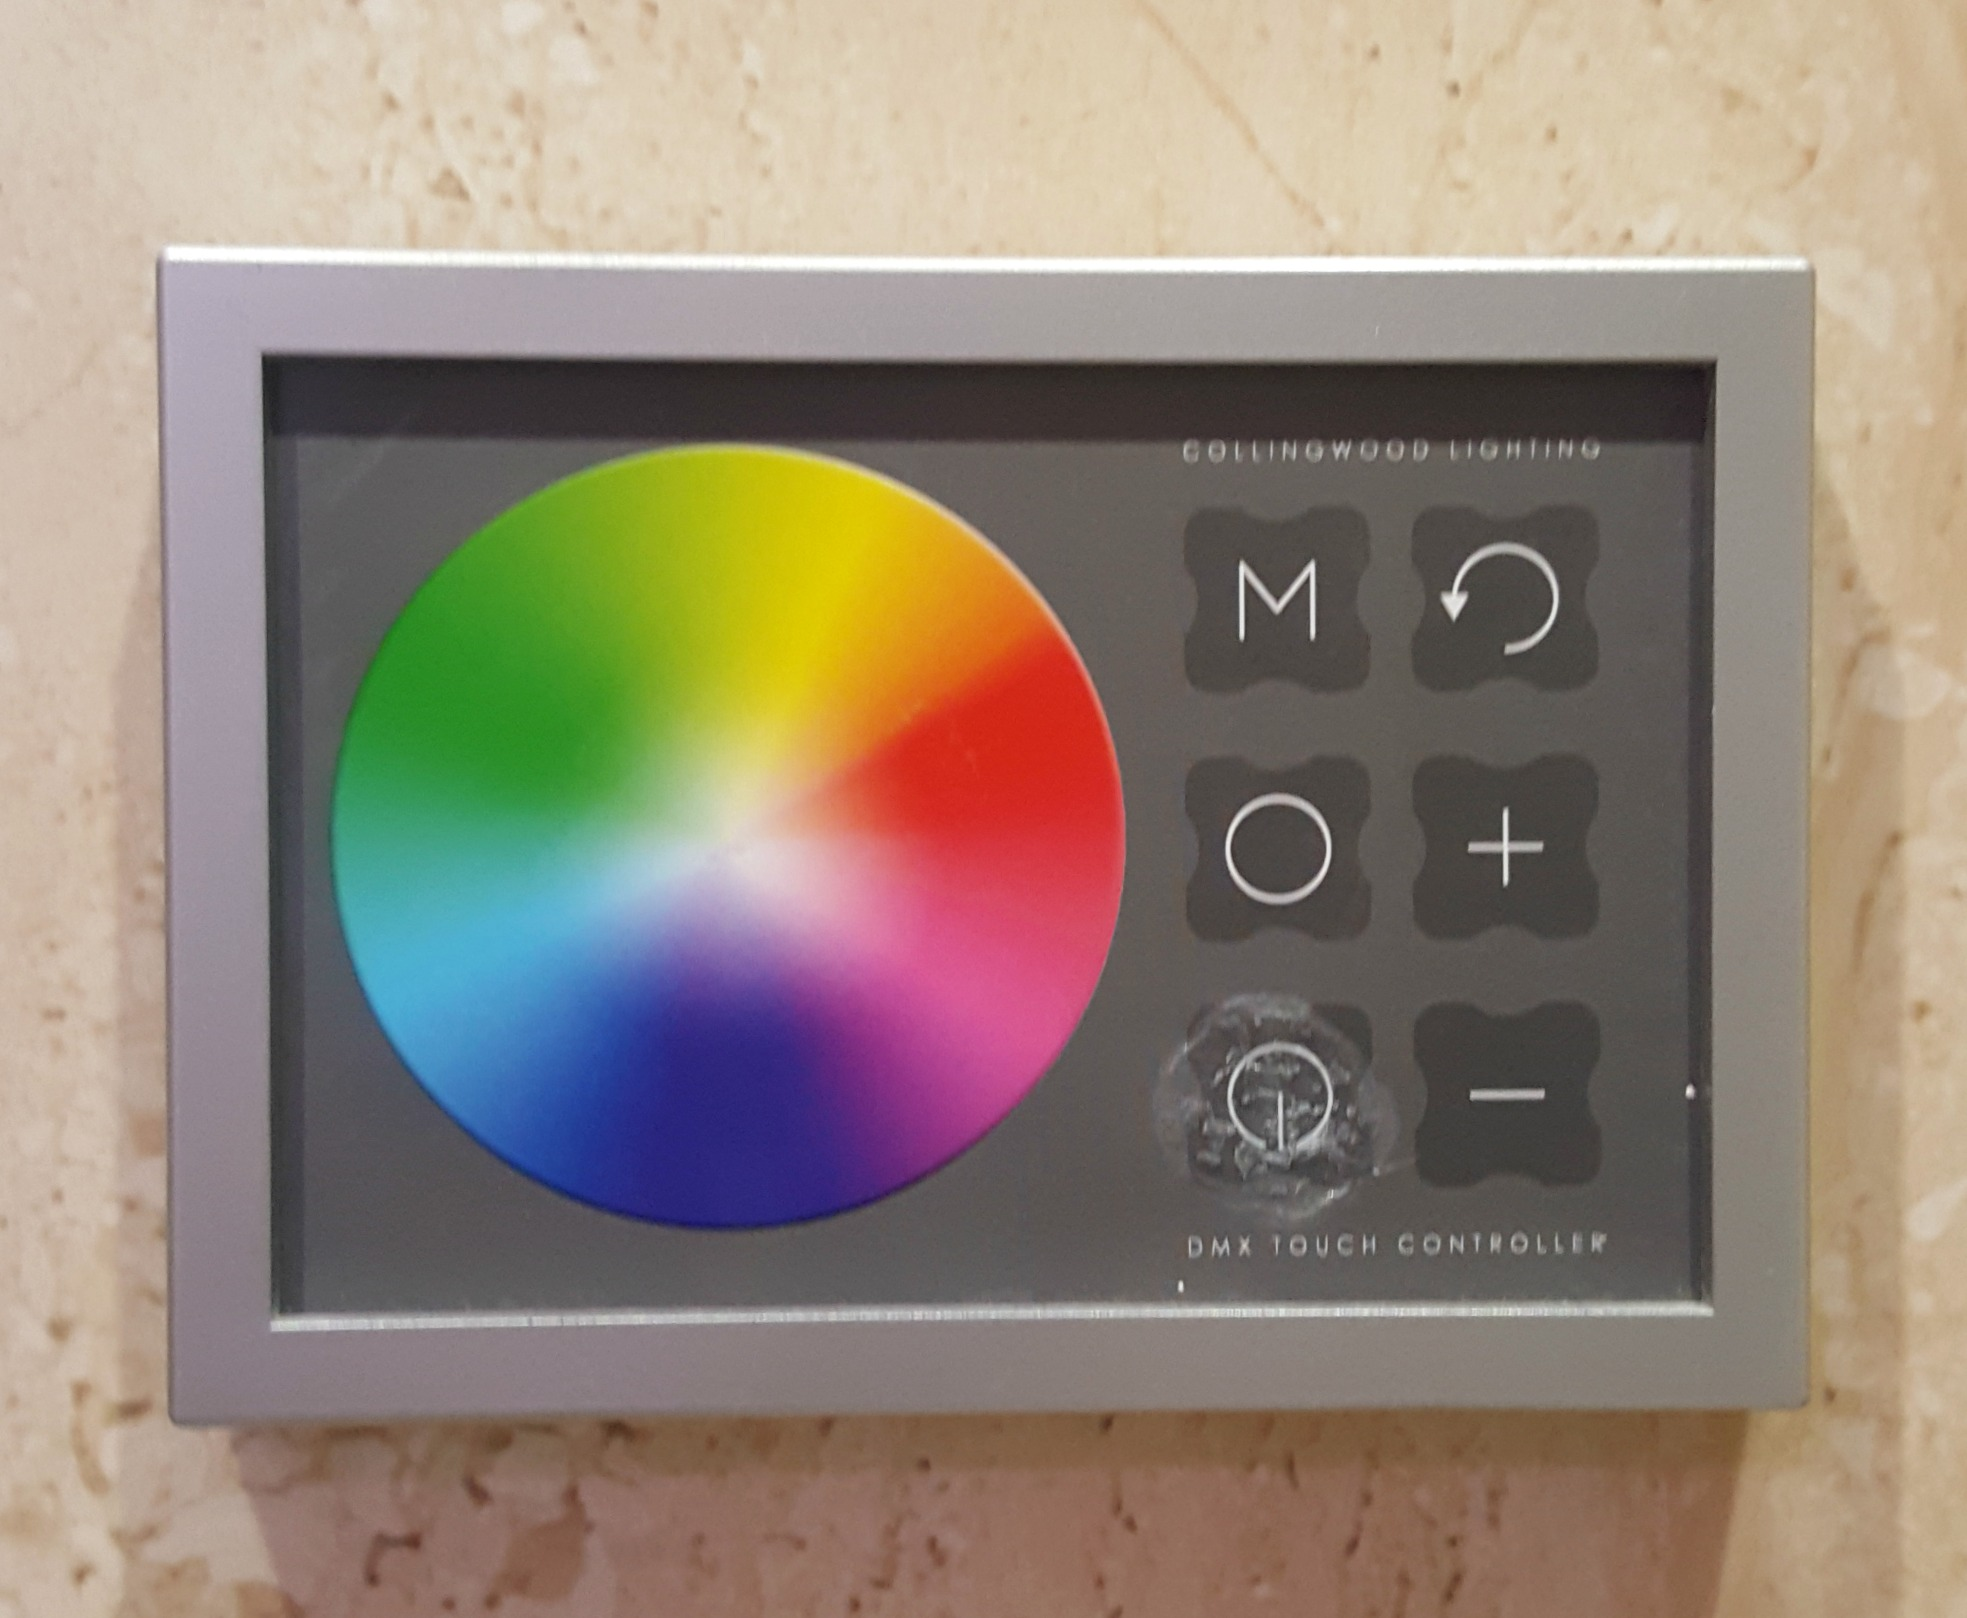 Colour changing lights control